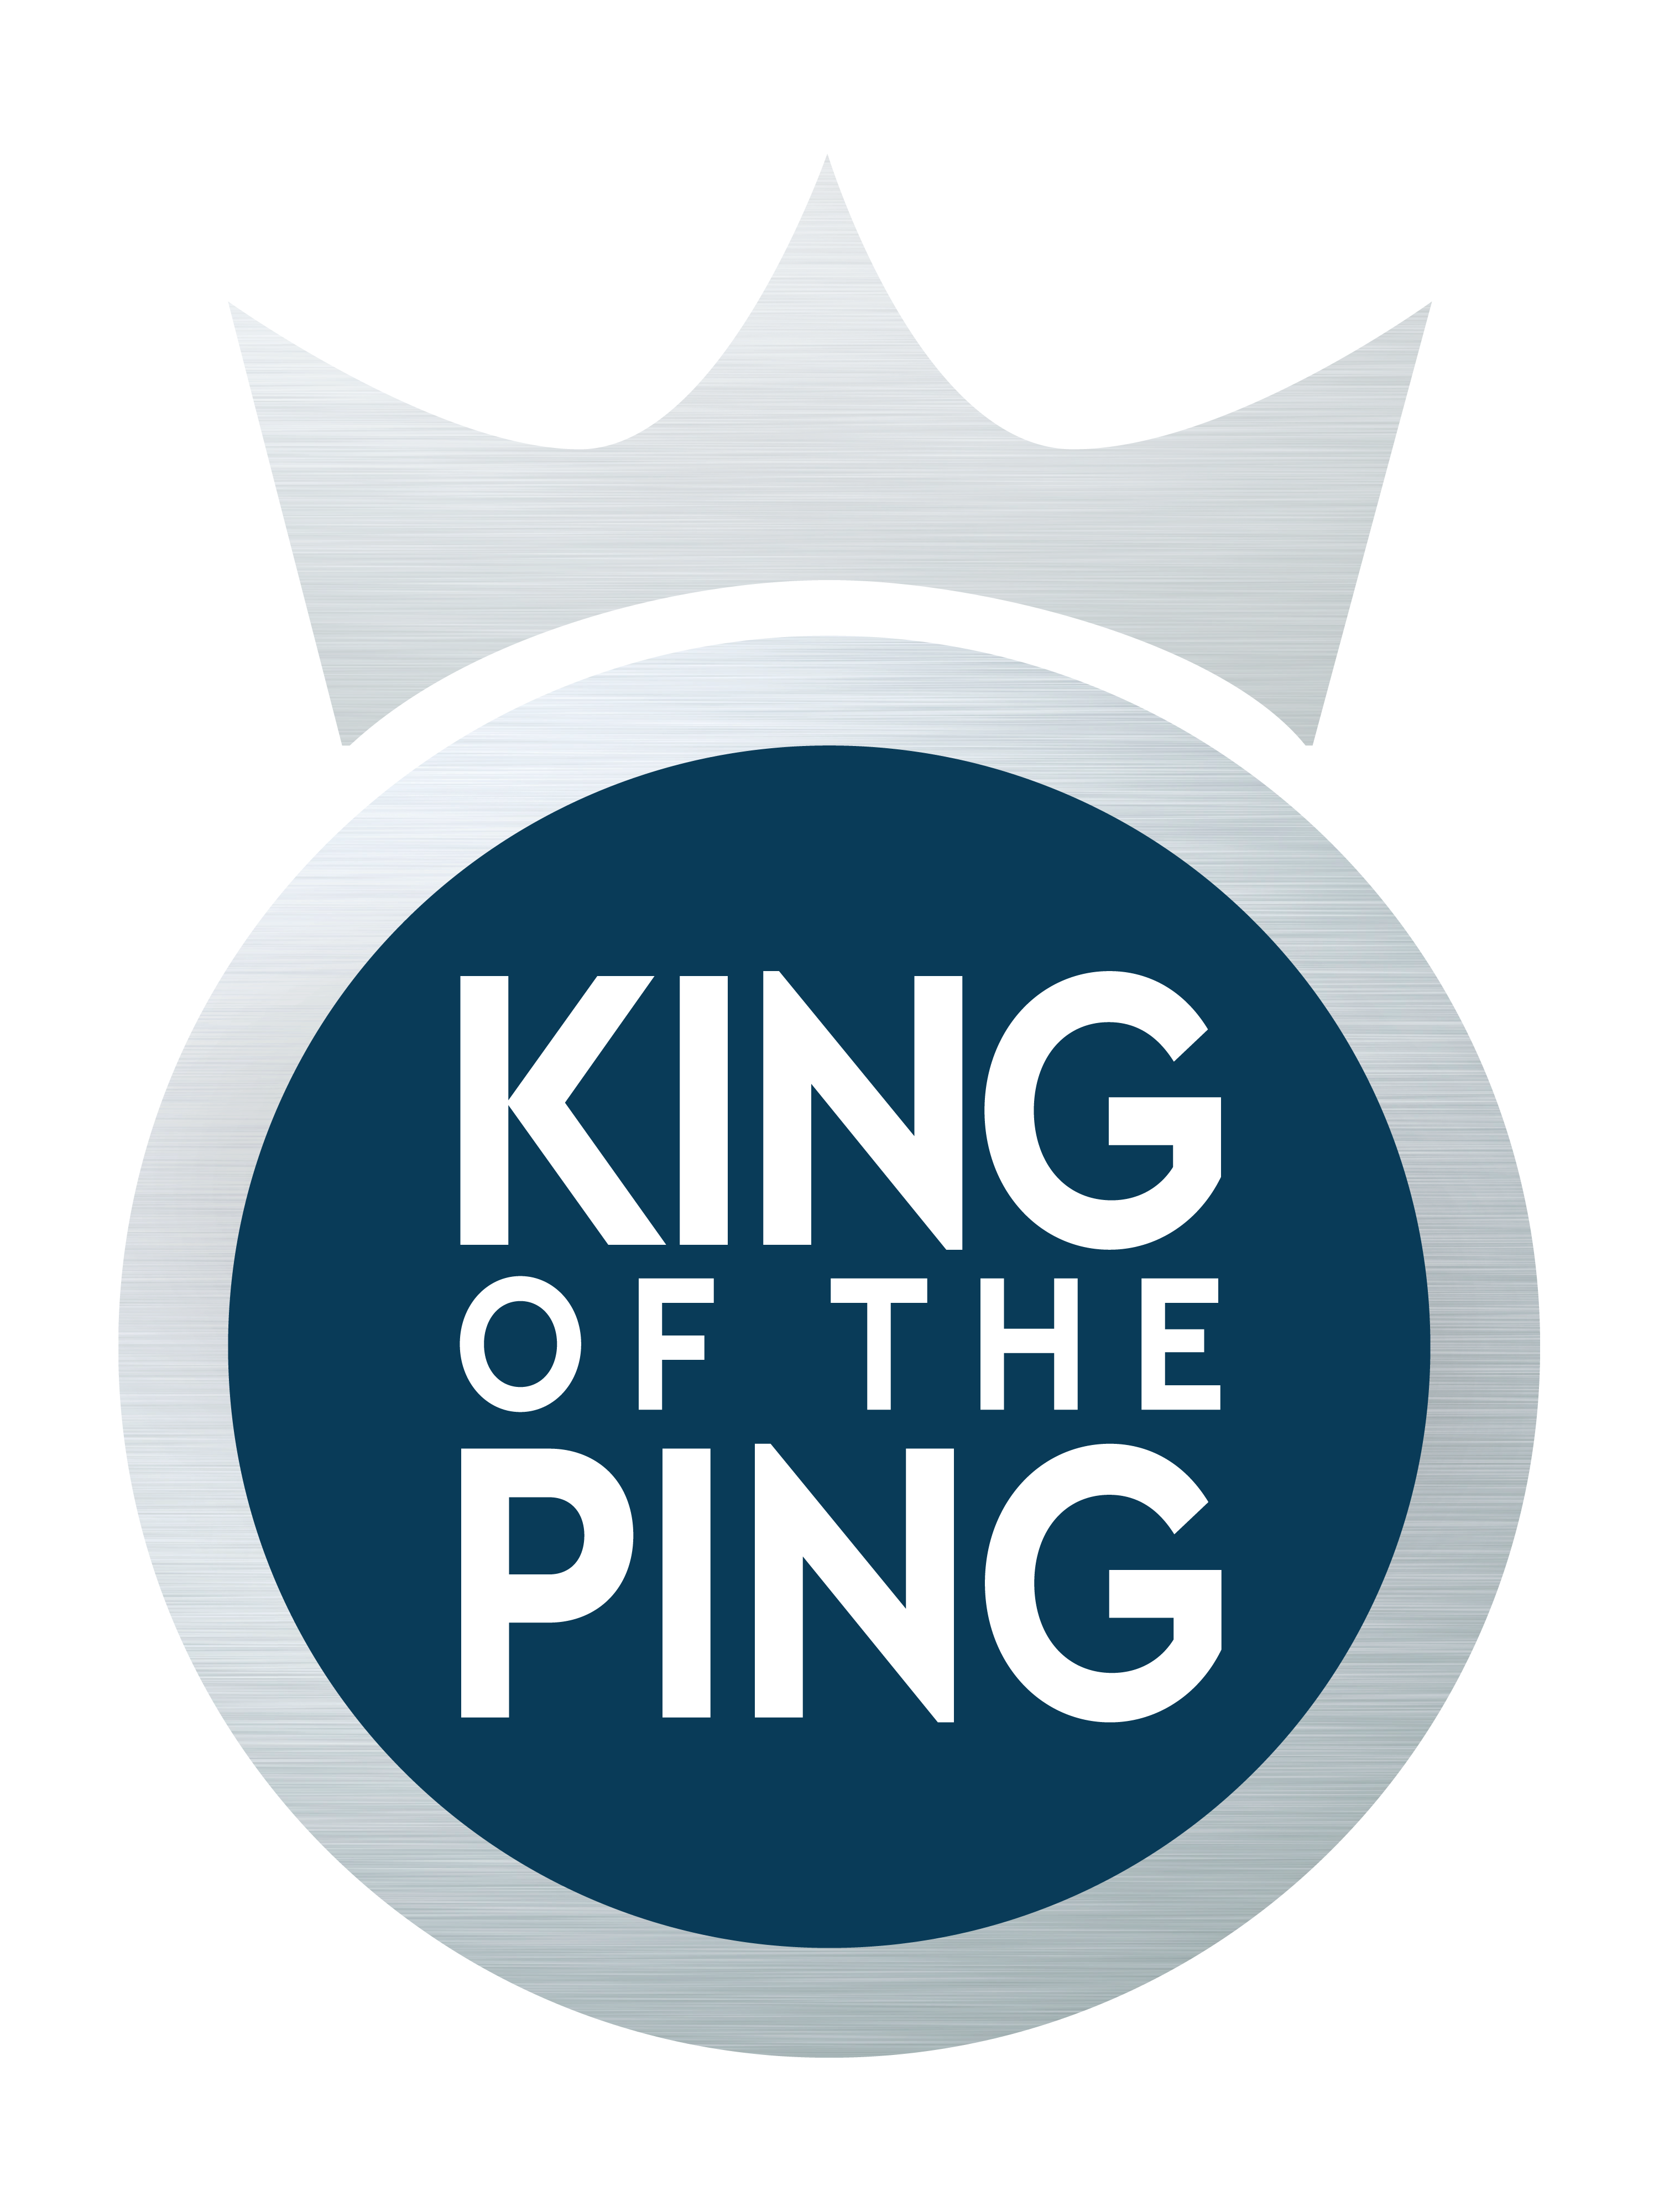 King of the Ping Siegel